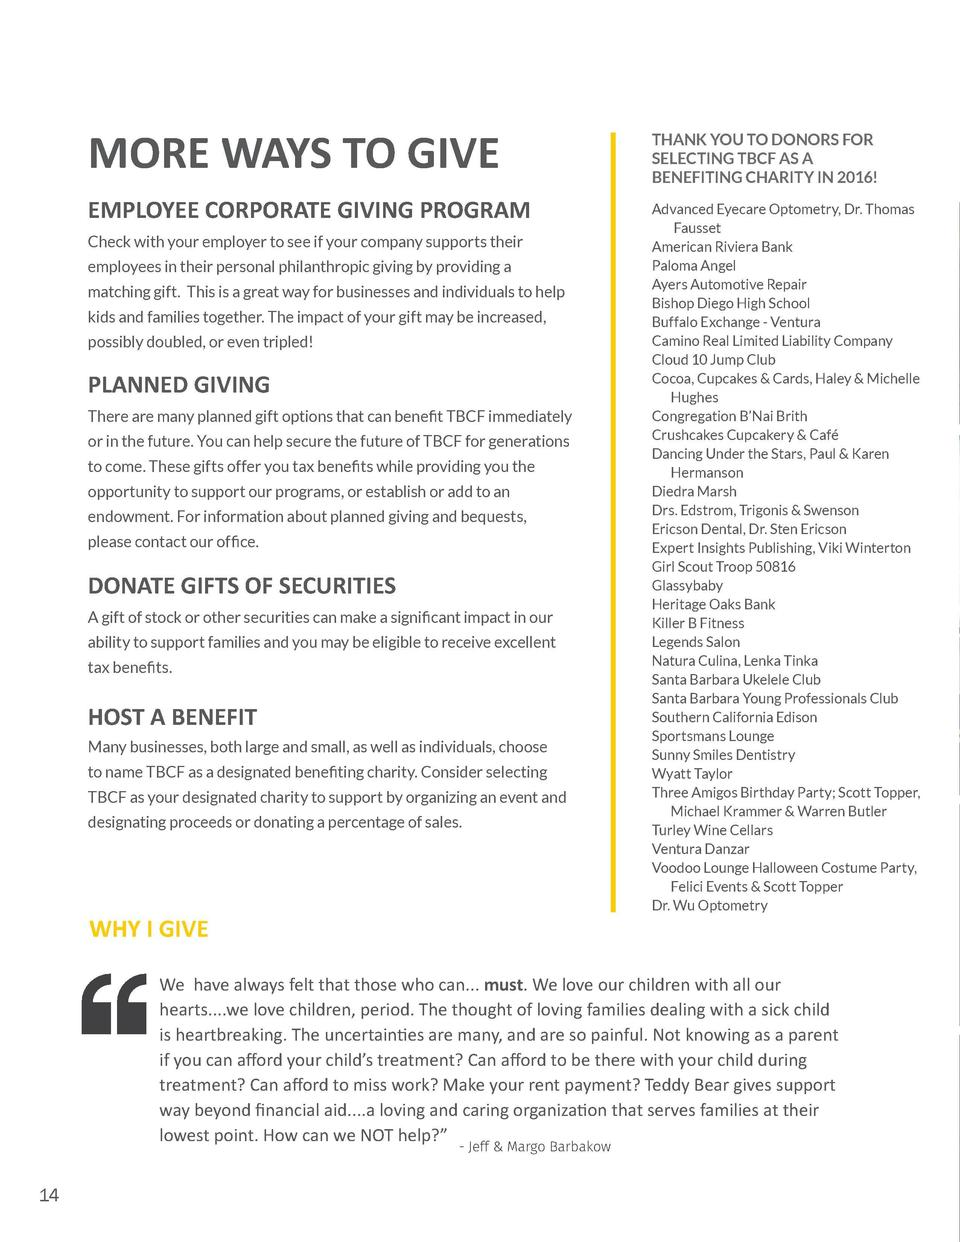 MORE WAYS TO GIVE EMPLOYEE CORPORATE GIVING PROGRAM Check with your employer to see if your company supports their employe...